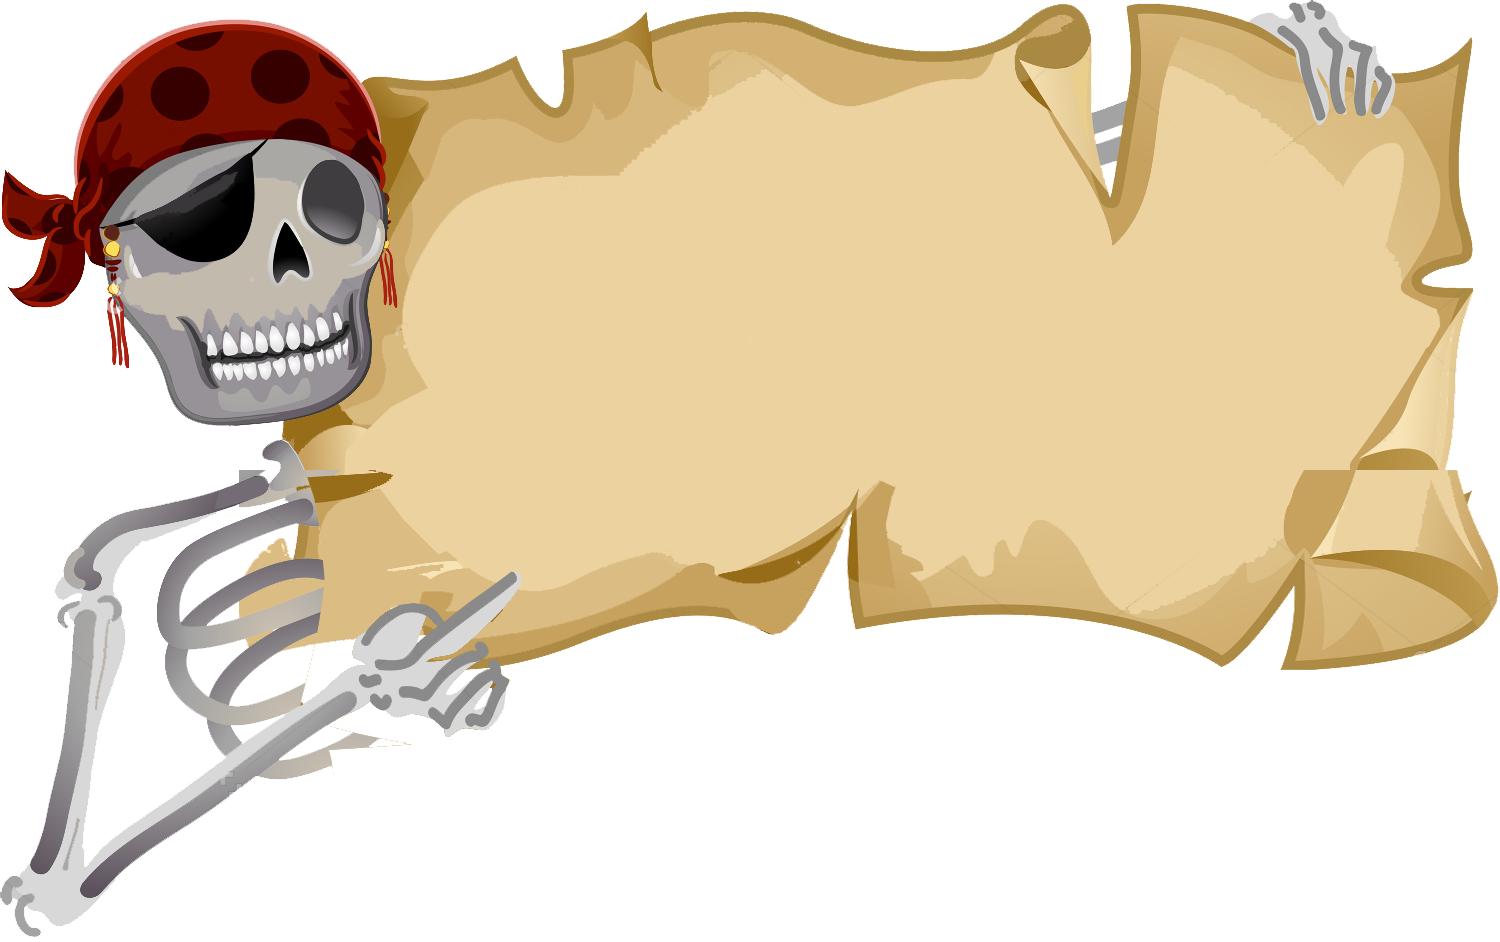 Divider clipart birthday. Party bluefoot pirates family